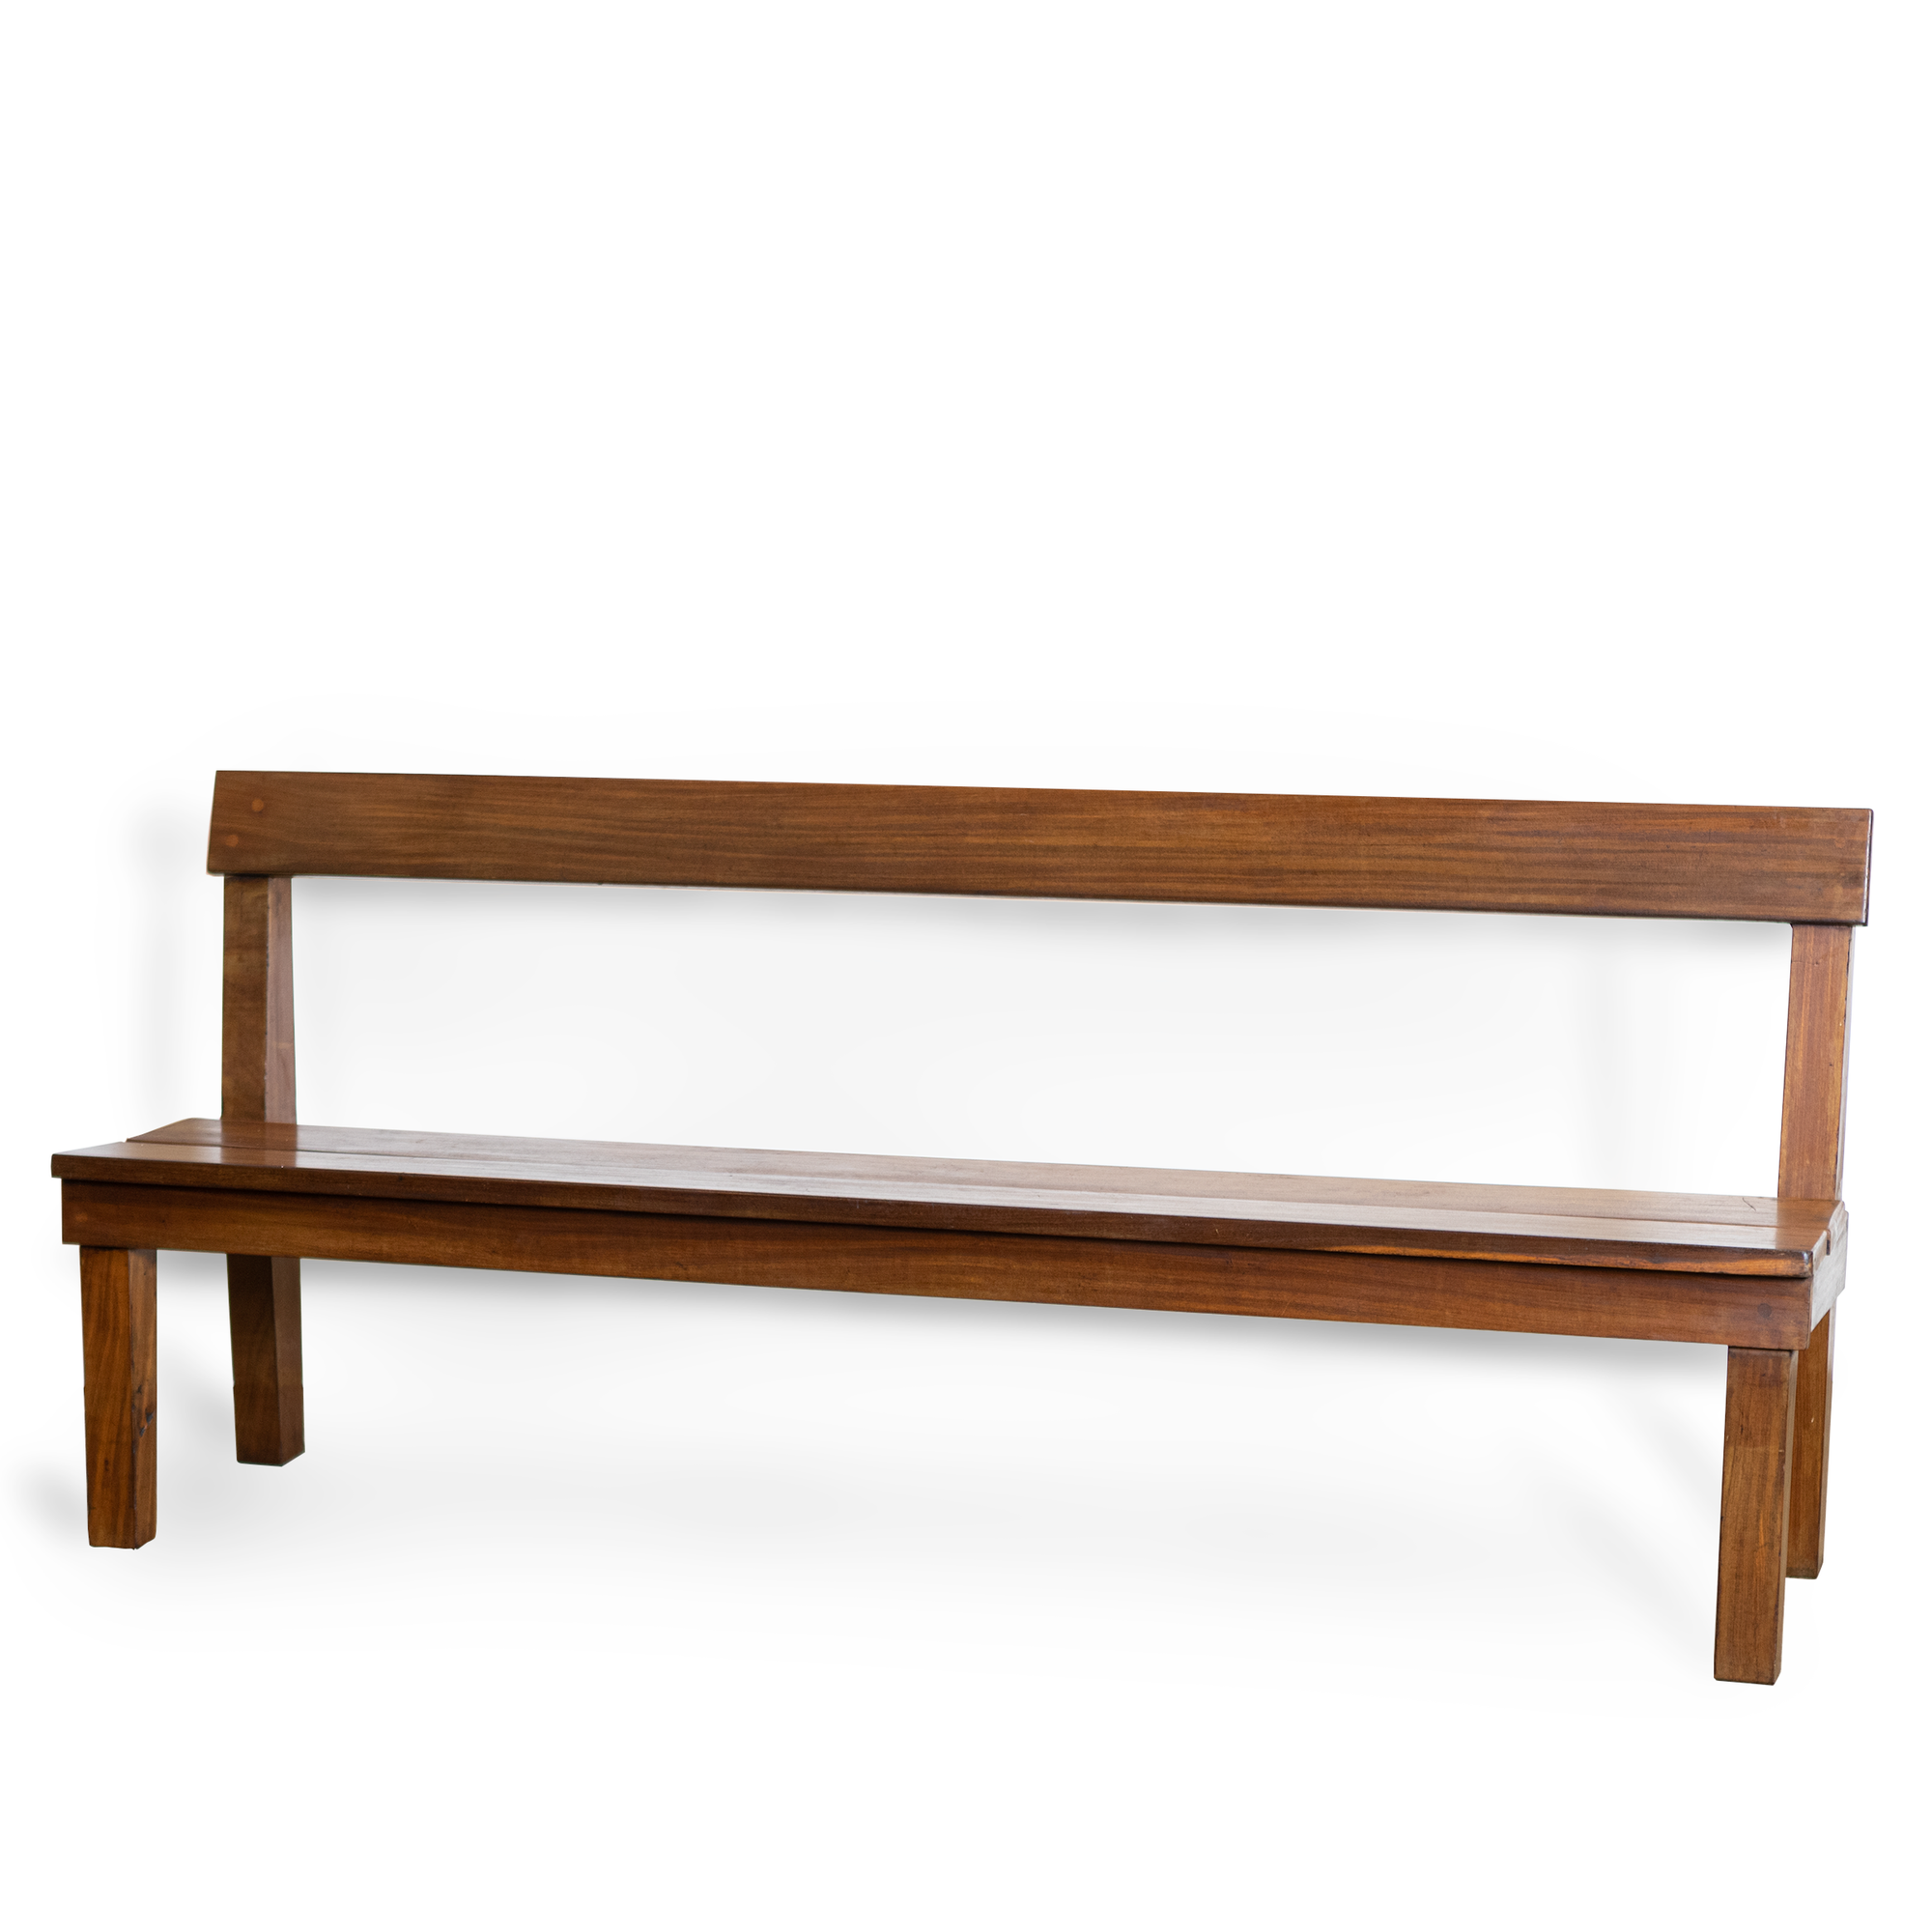 Reclaimed Solid Teak Bench Seat | The Architectural Forum